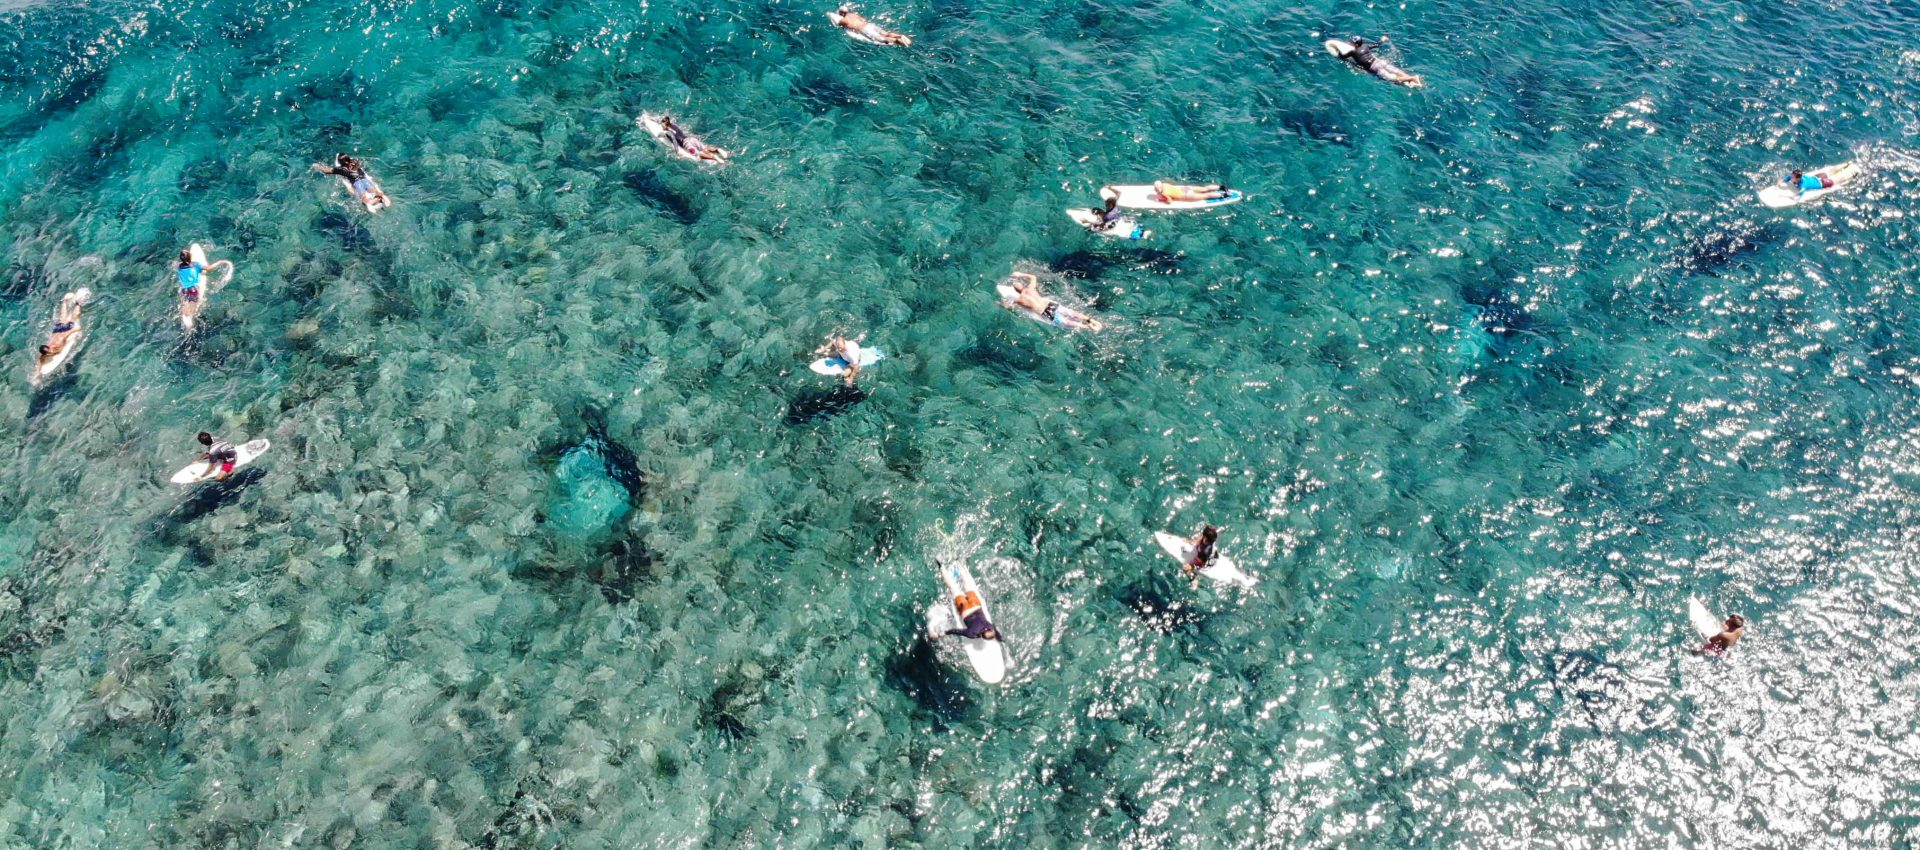 Birds eye view of our group enjoying the warm crystal clear water and the perfectly smooth waves.